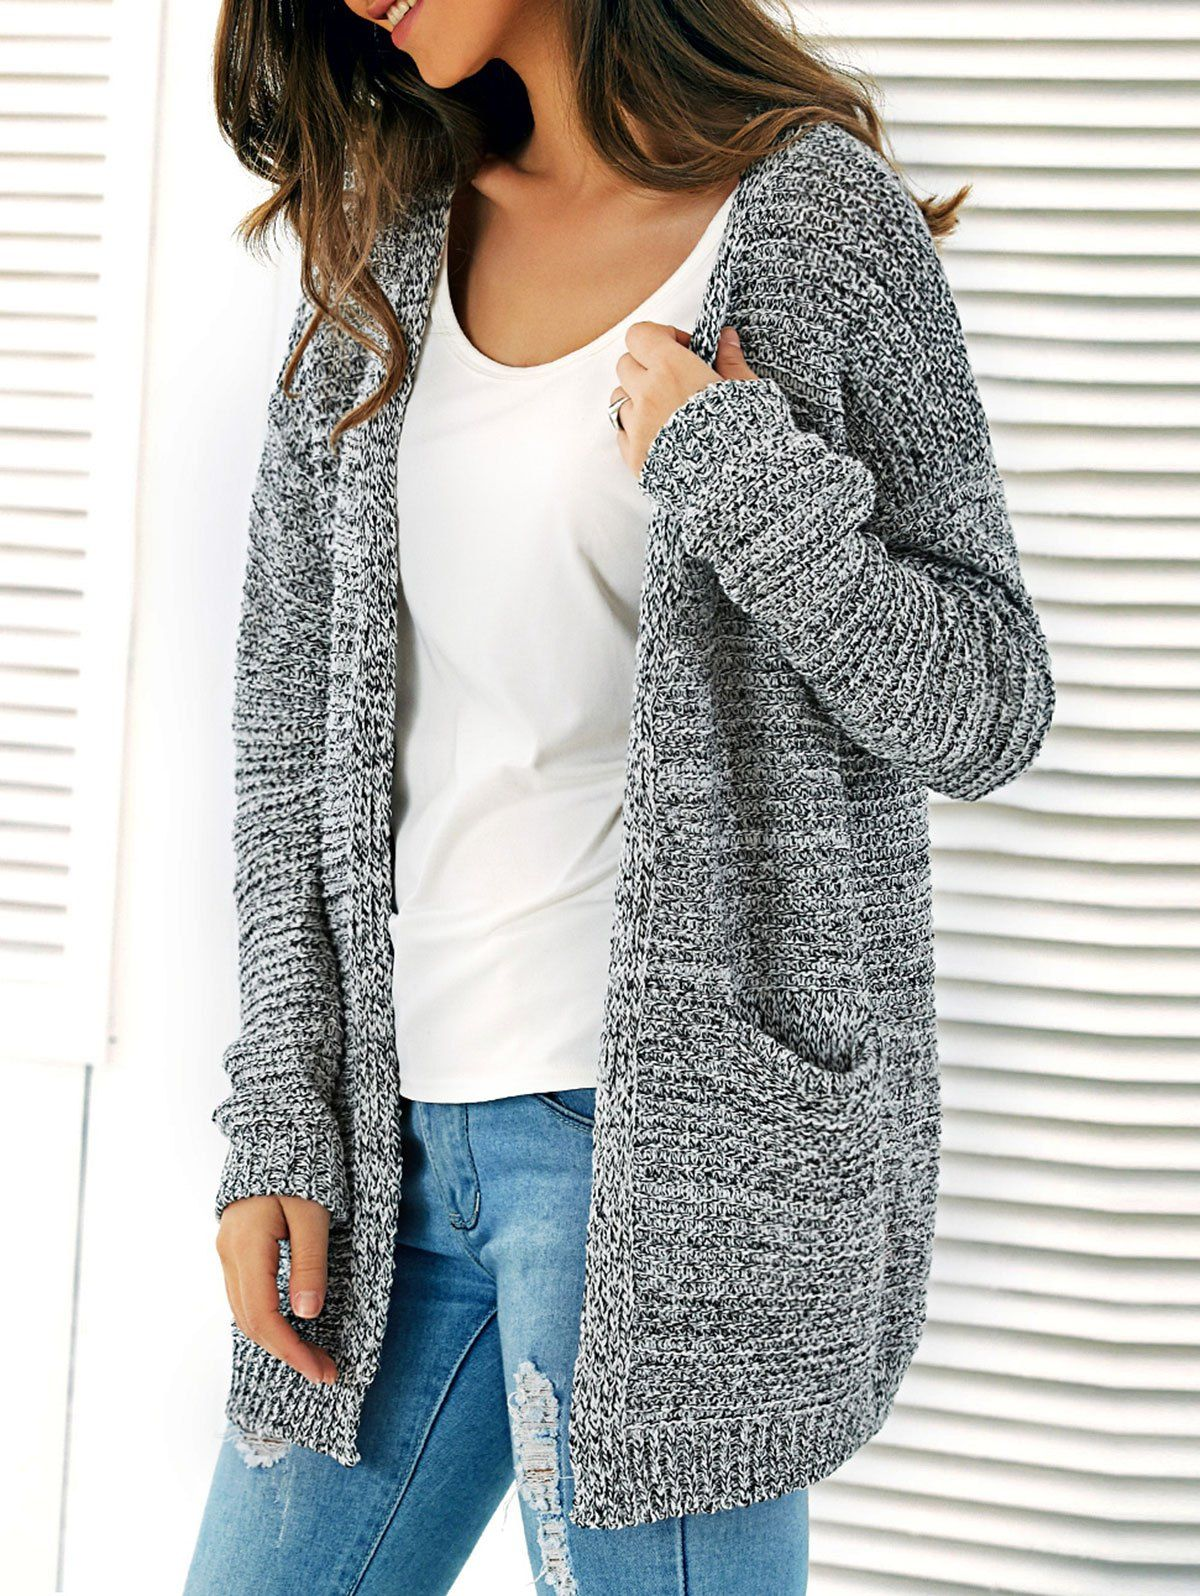 Cream Knit Cardigan, Lightweight Sweaters for Spring, Women's ...